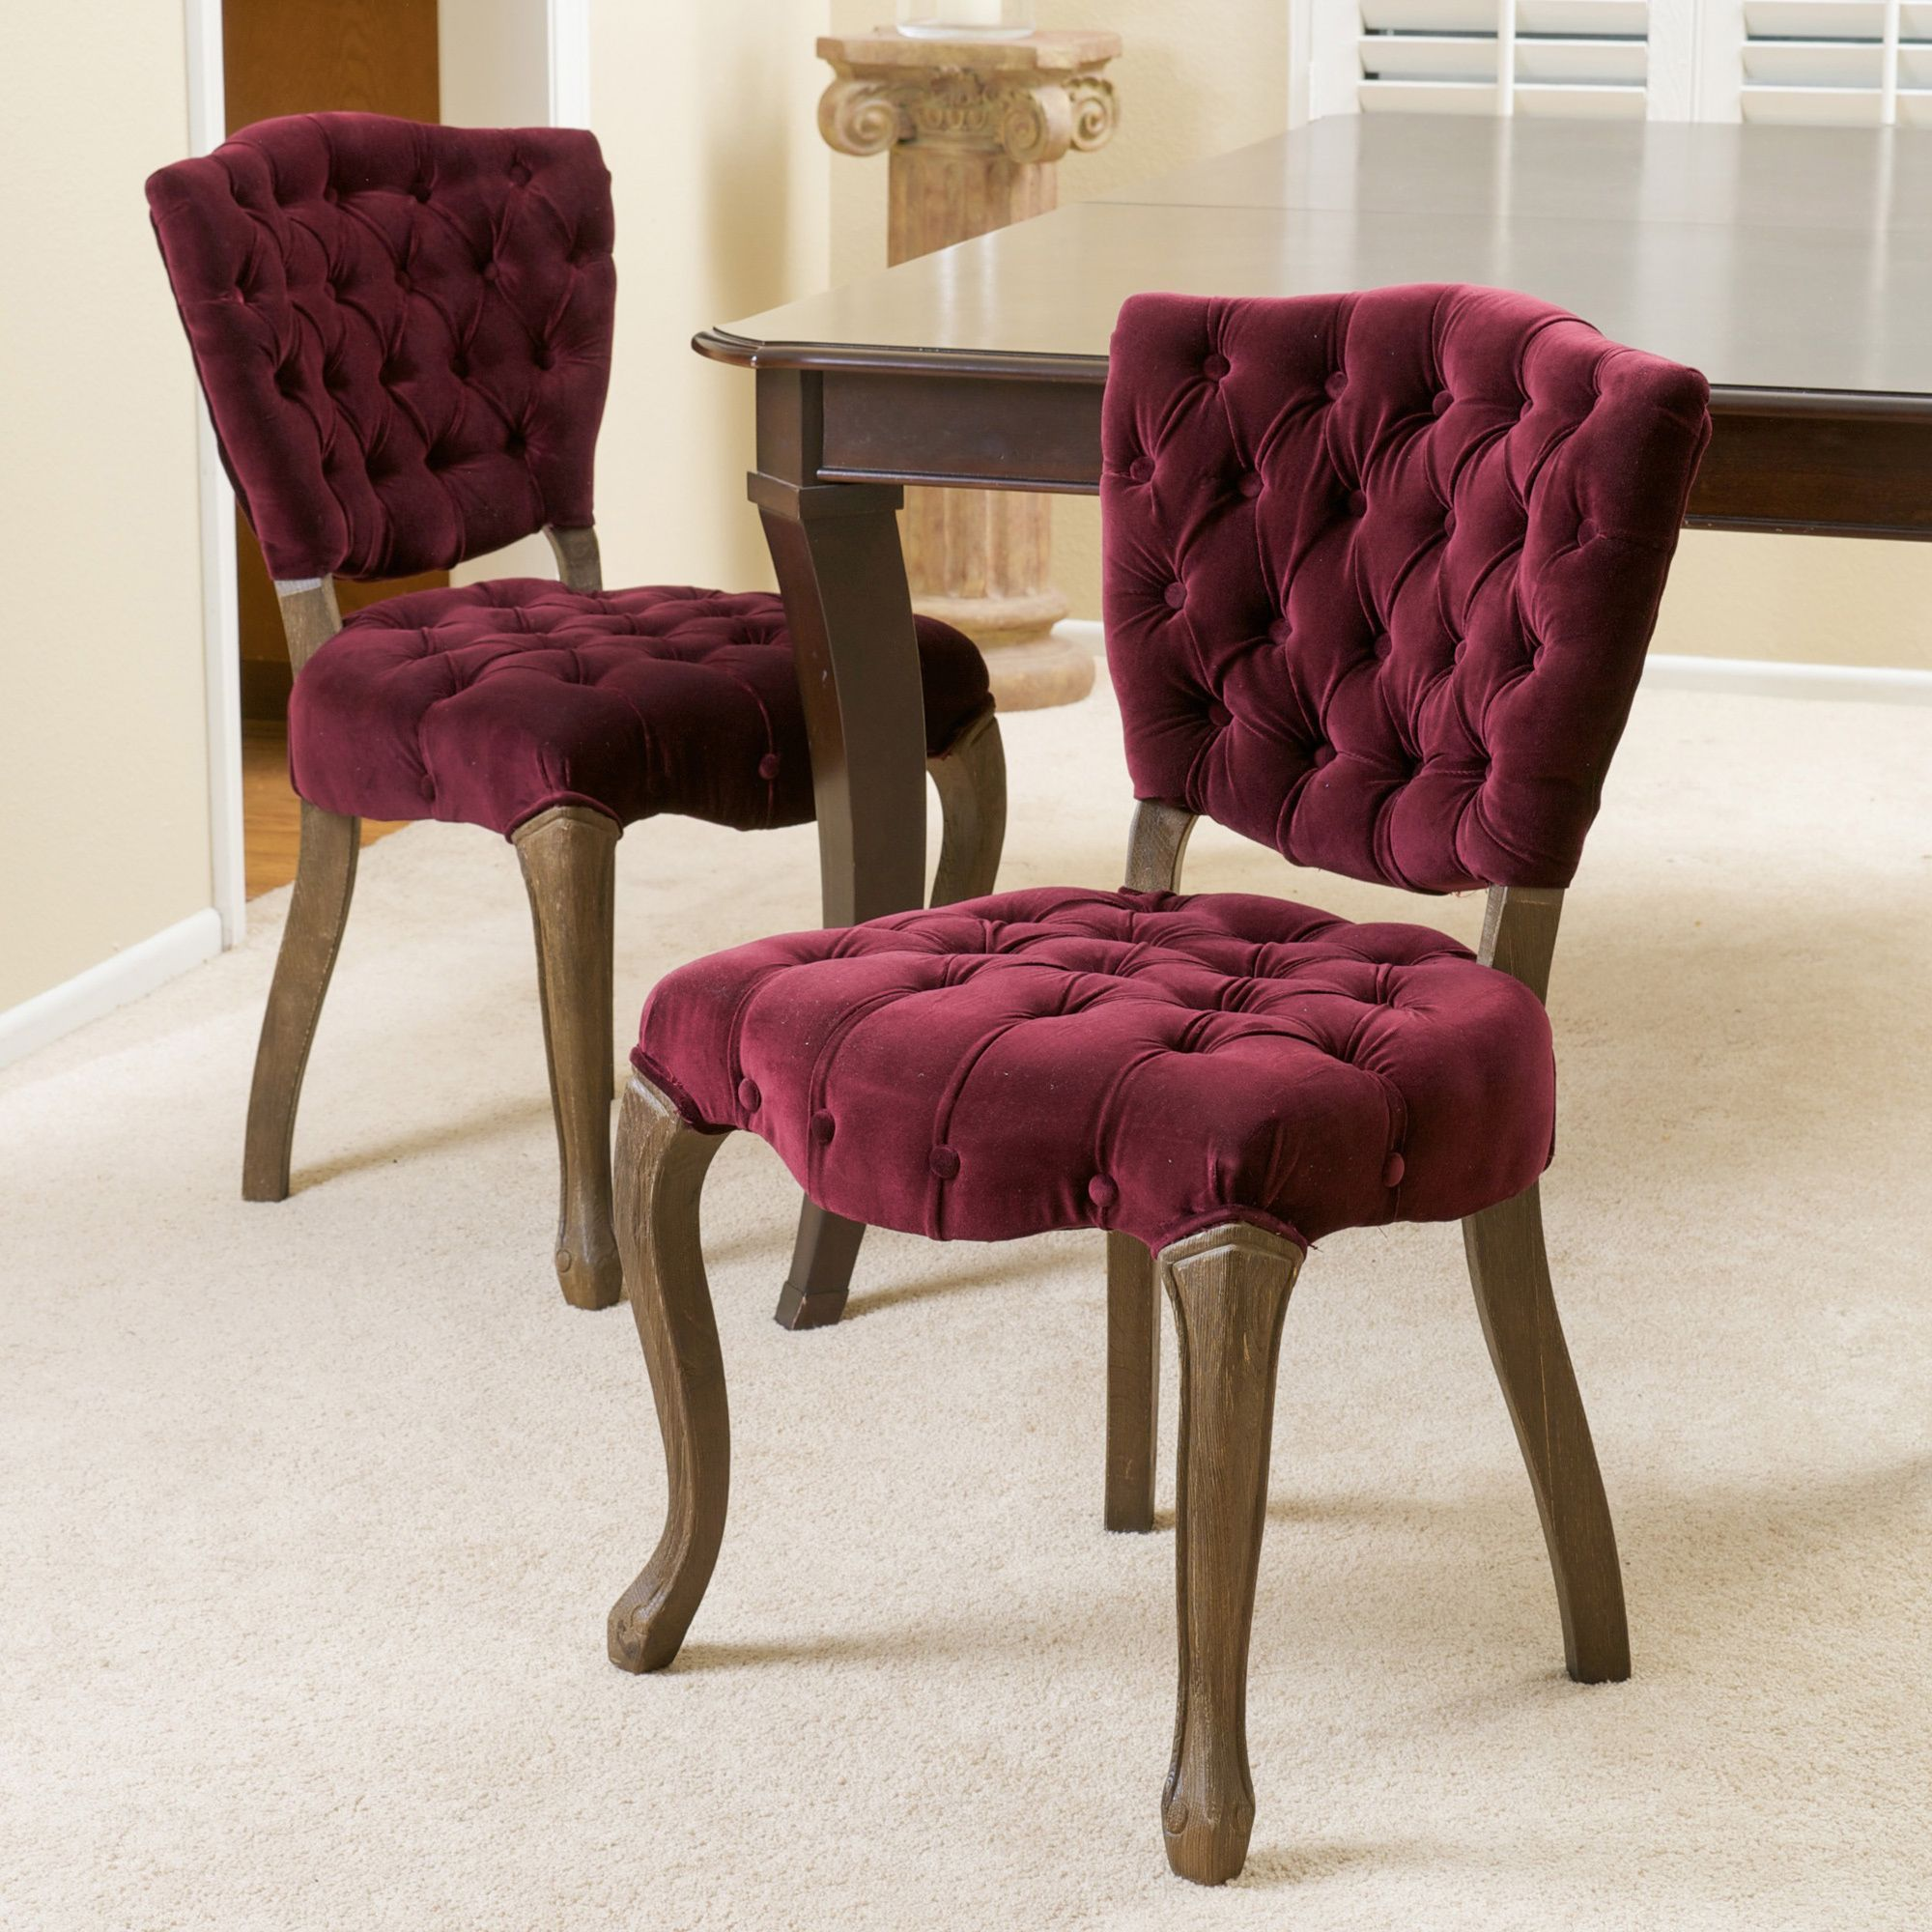 Bates Tufted Dark Purple Fabric Dining Chairs Set Of 2 By Christopher Knight Home